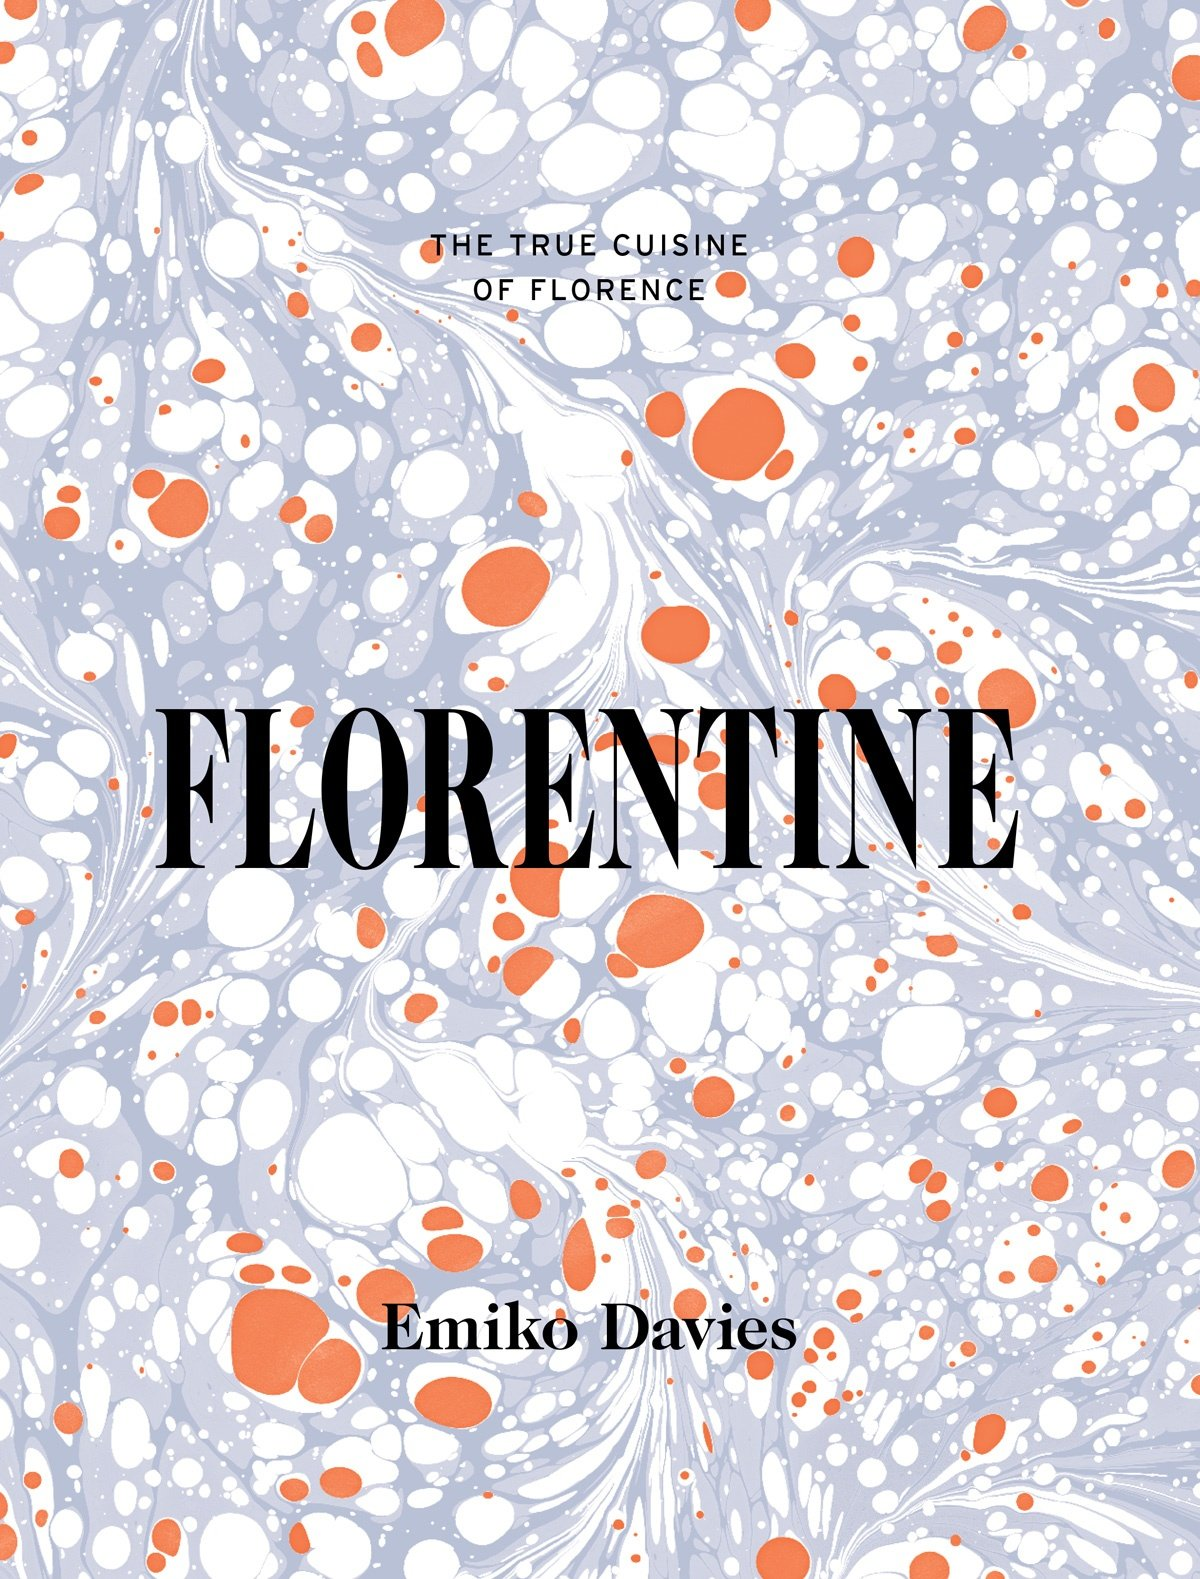 Book cover of Florentine by Emiko Davies